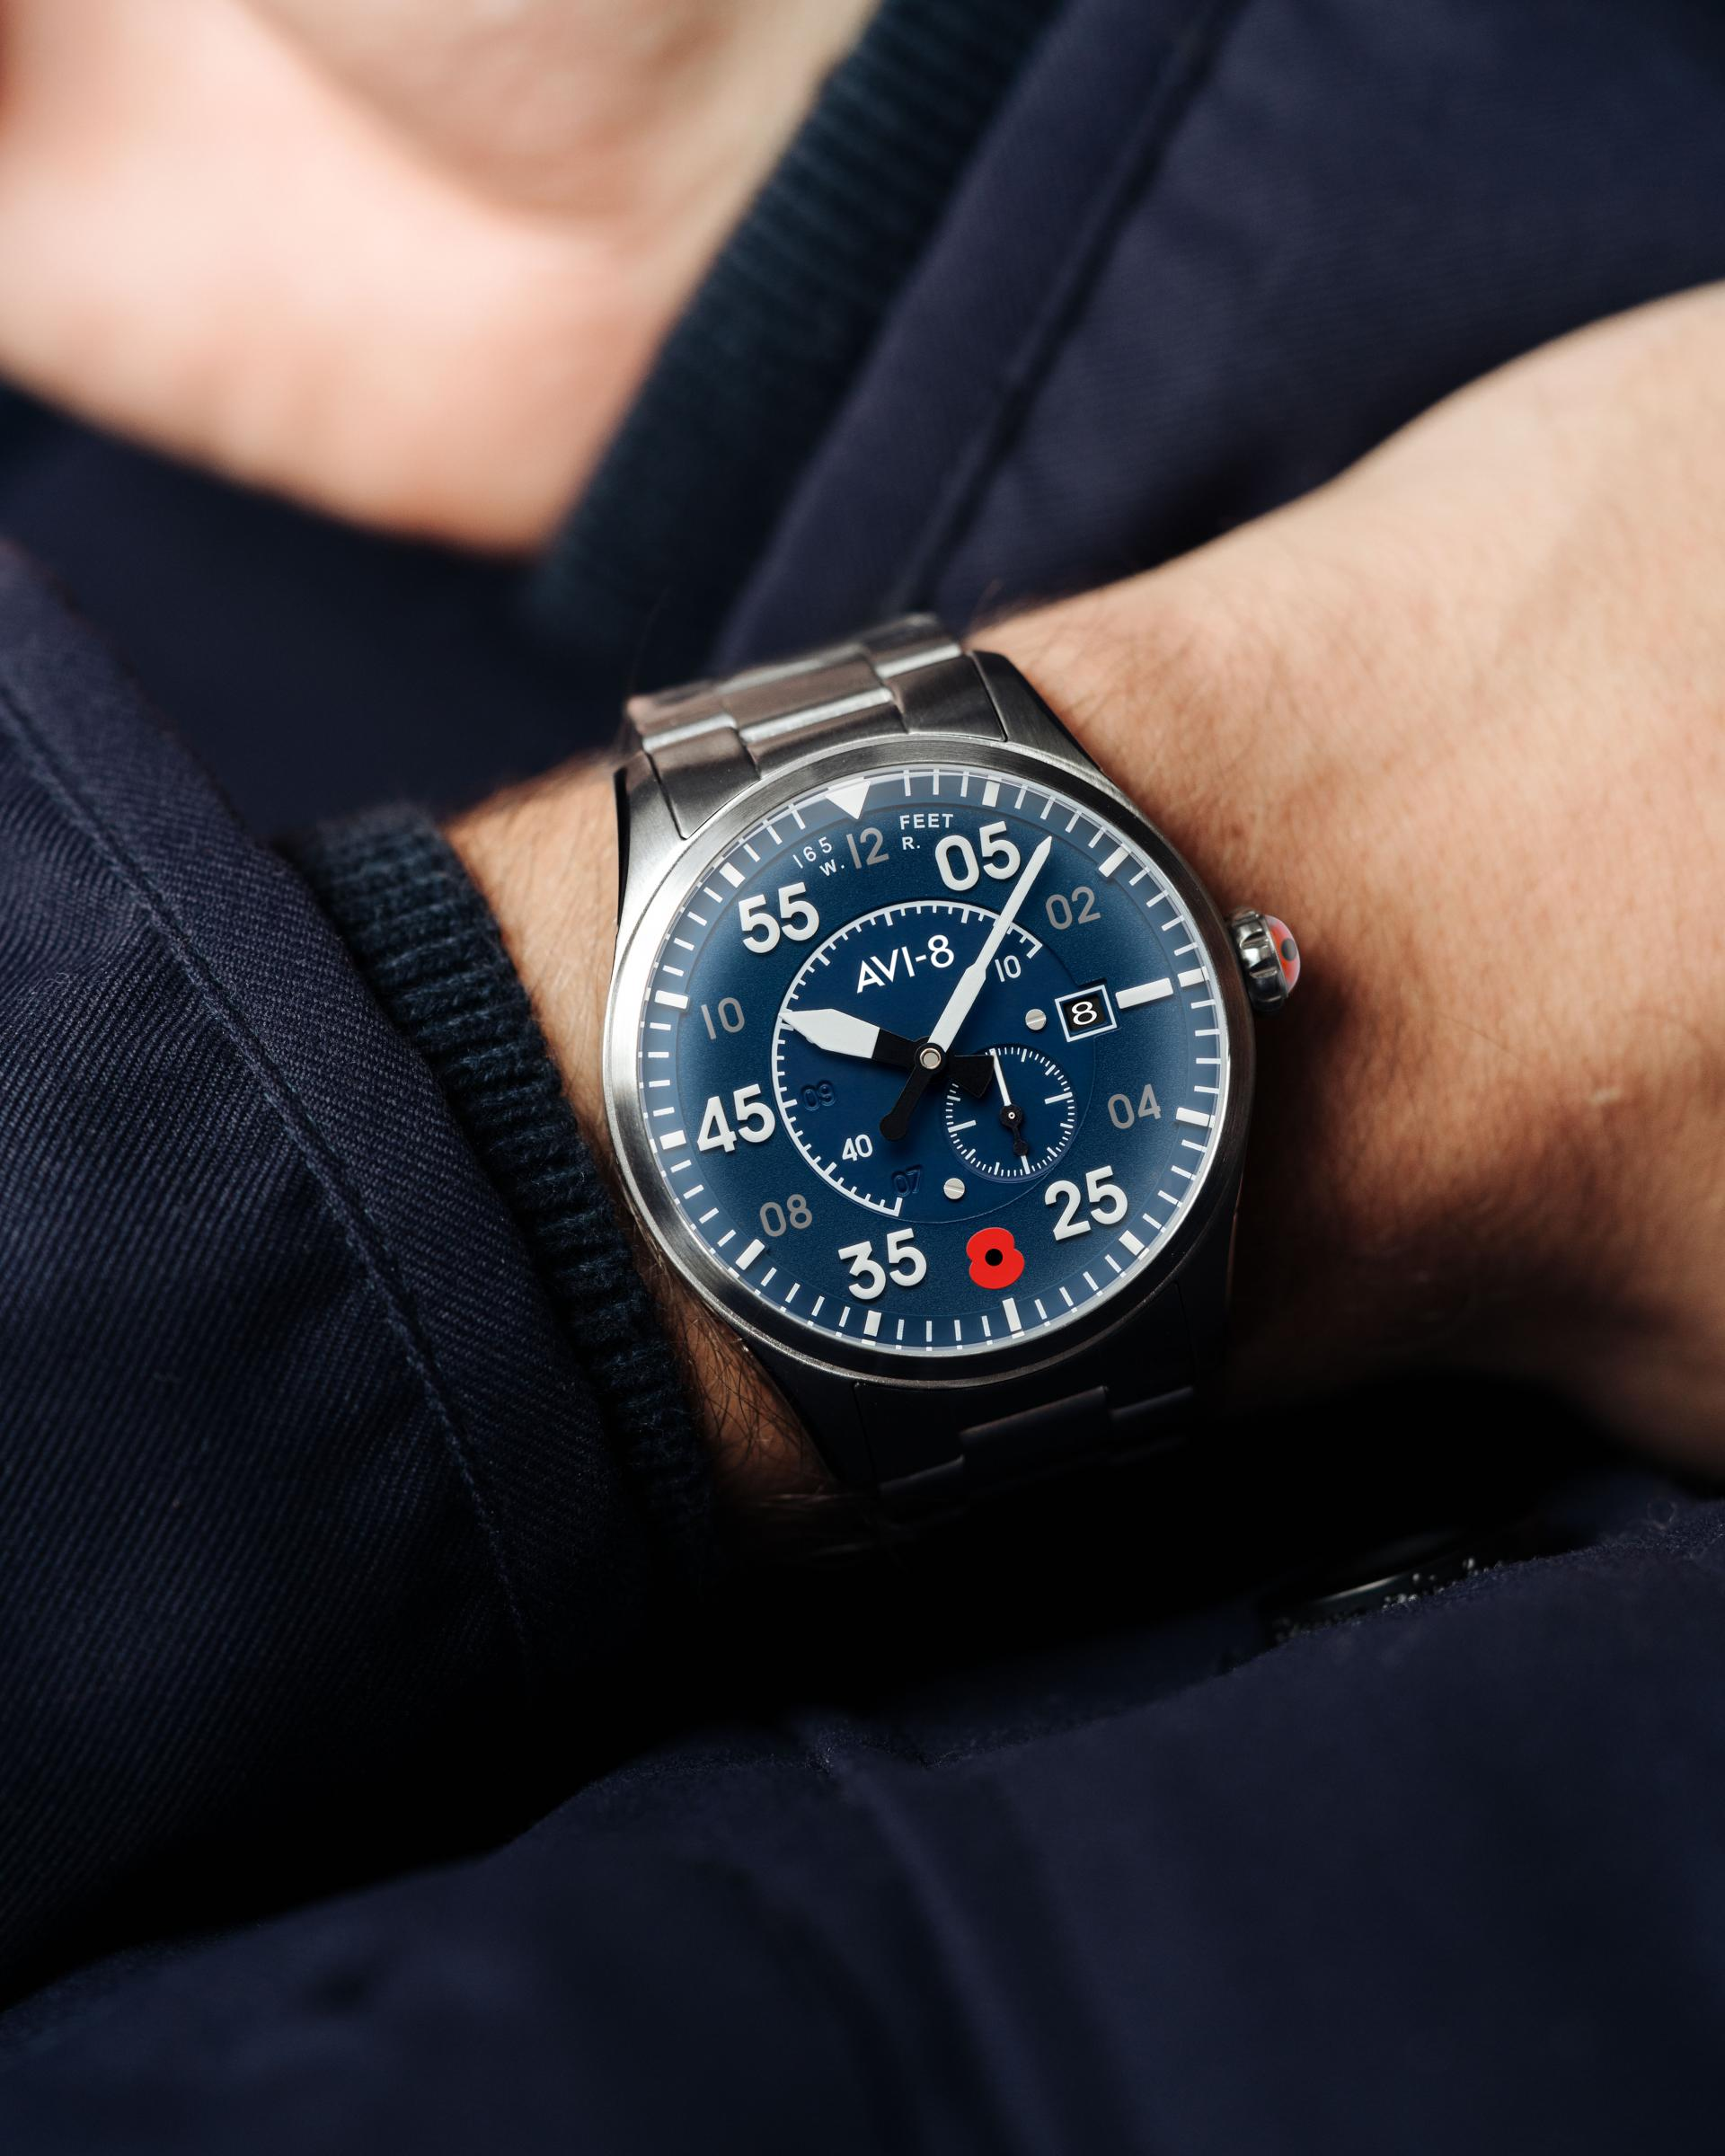 The limited-edition AVI-8 Spitfire Type 300 Automatic Royal British Legion